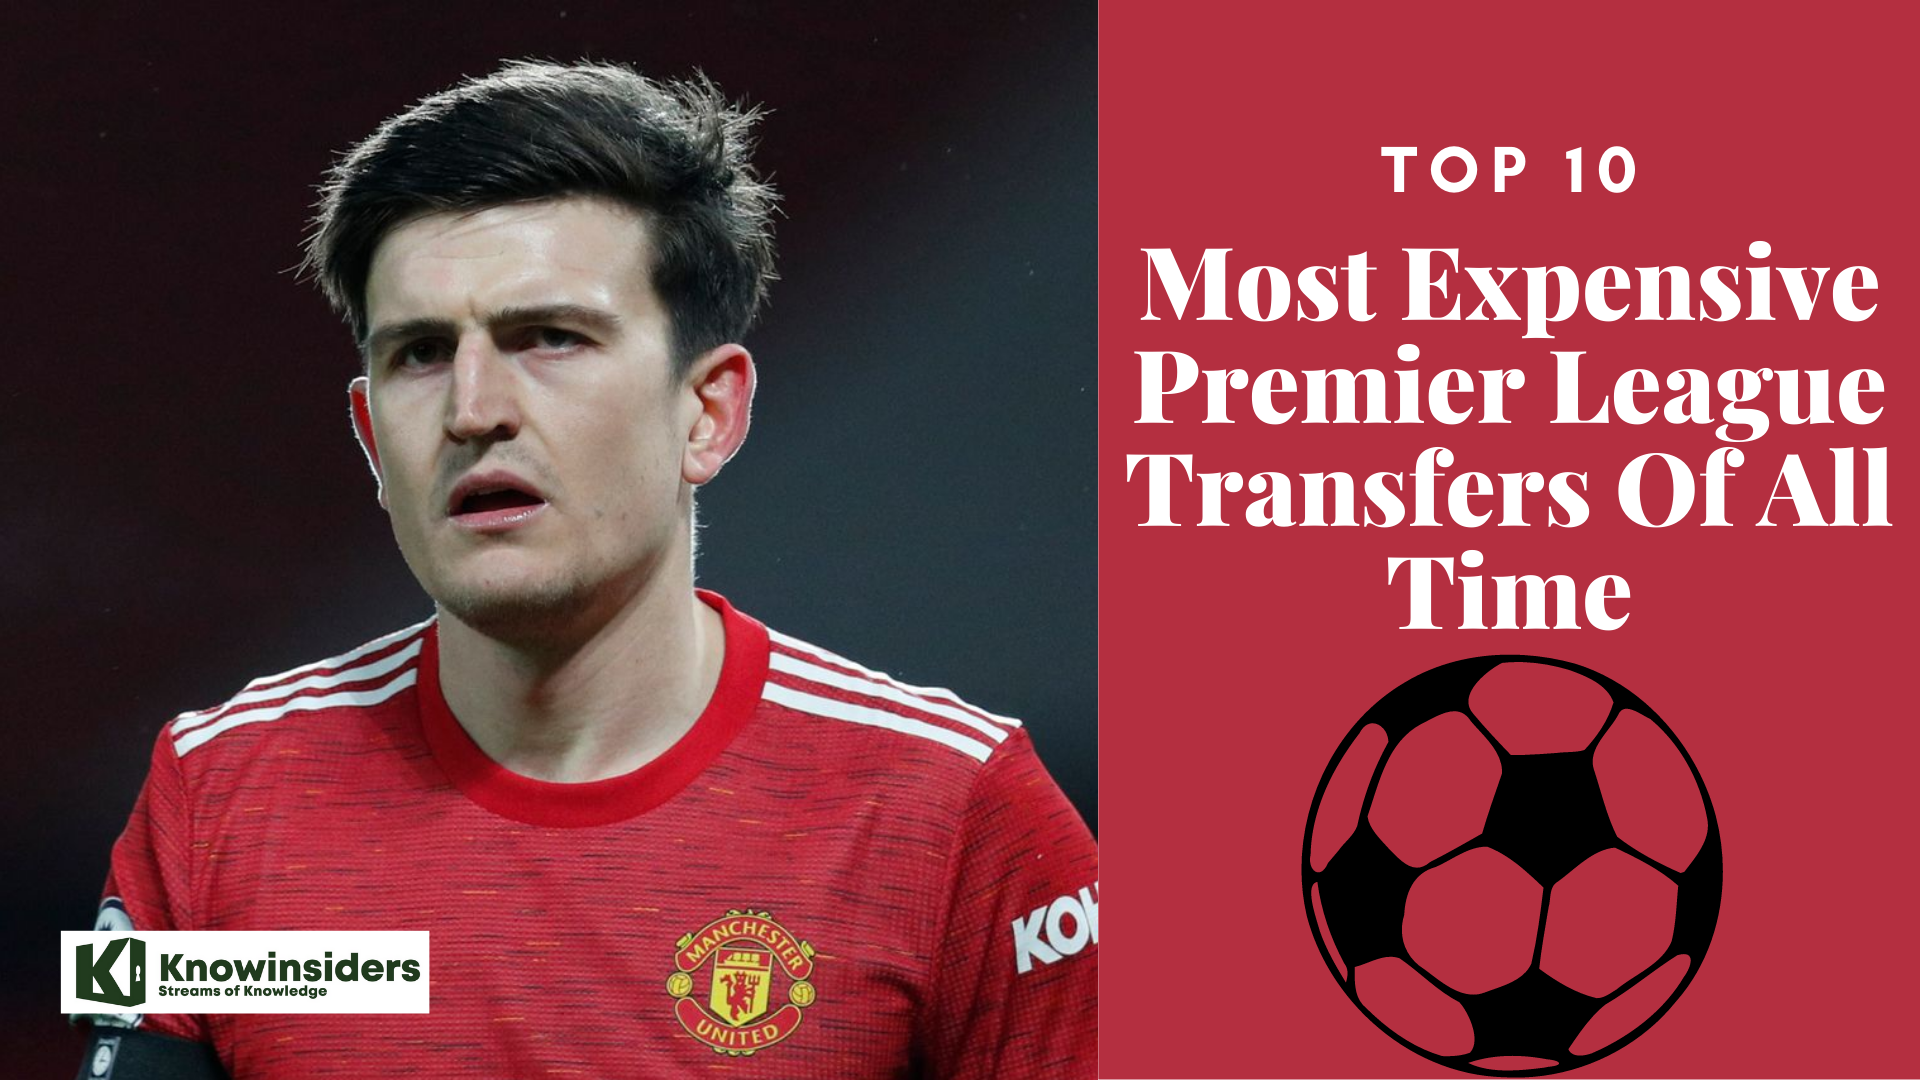 Top 10 Most Expensive Premier League Transfers Of All Time